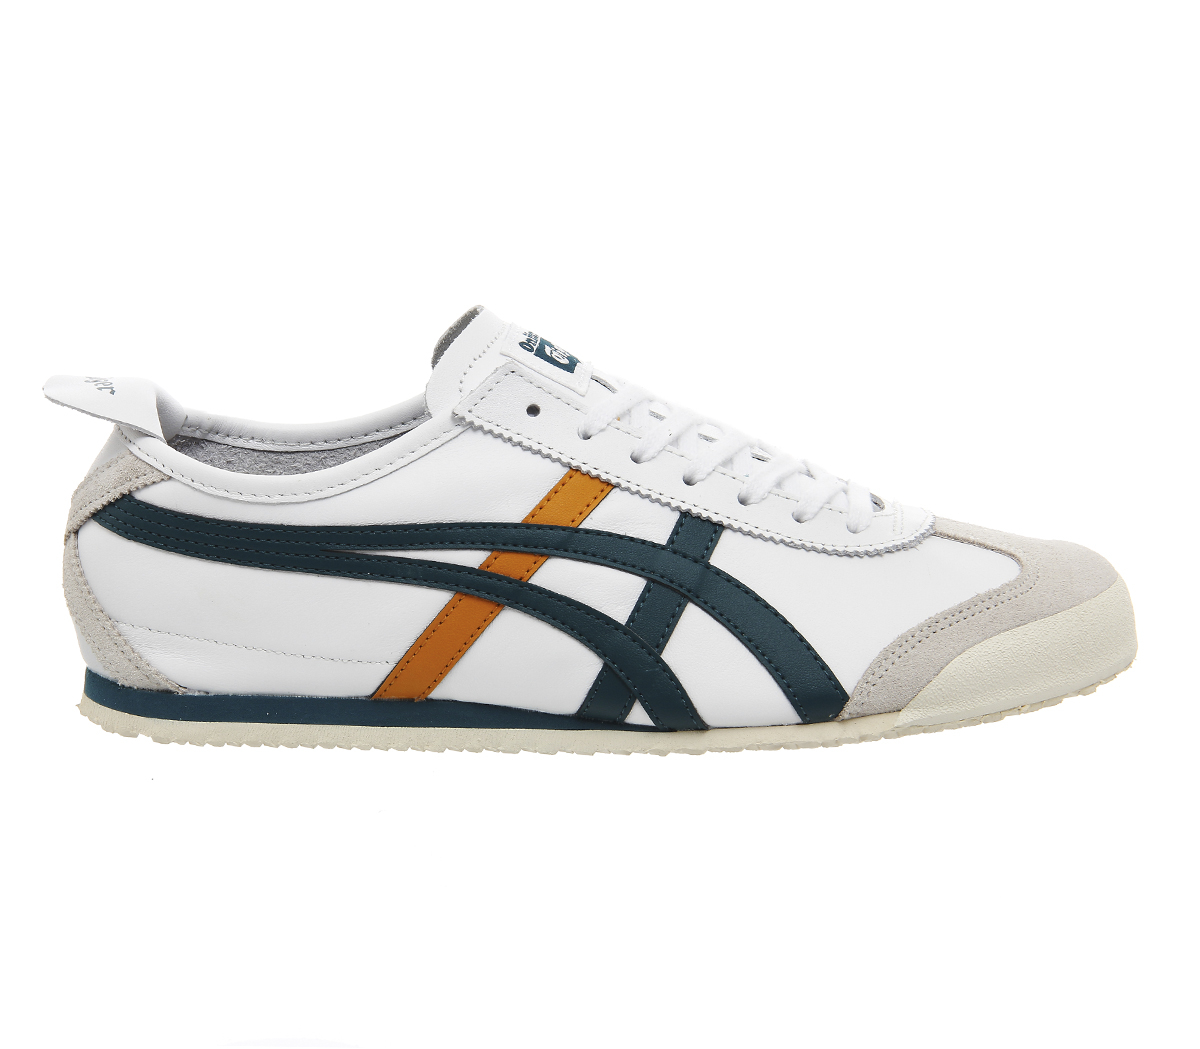 onitsuka tiger mexico 66 in white lyst. Black Bedroom Furniture Sets. Home Design Ideas